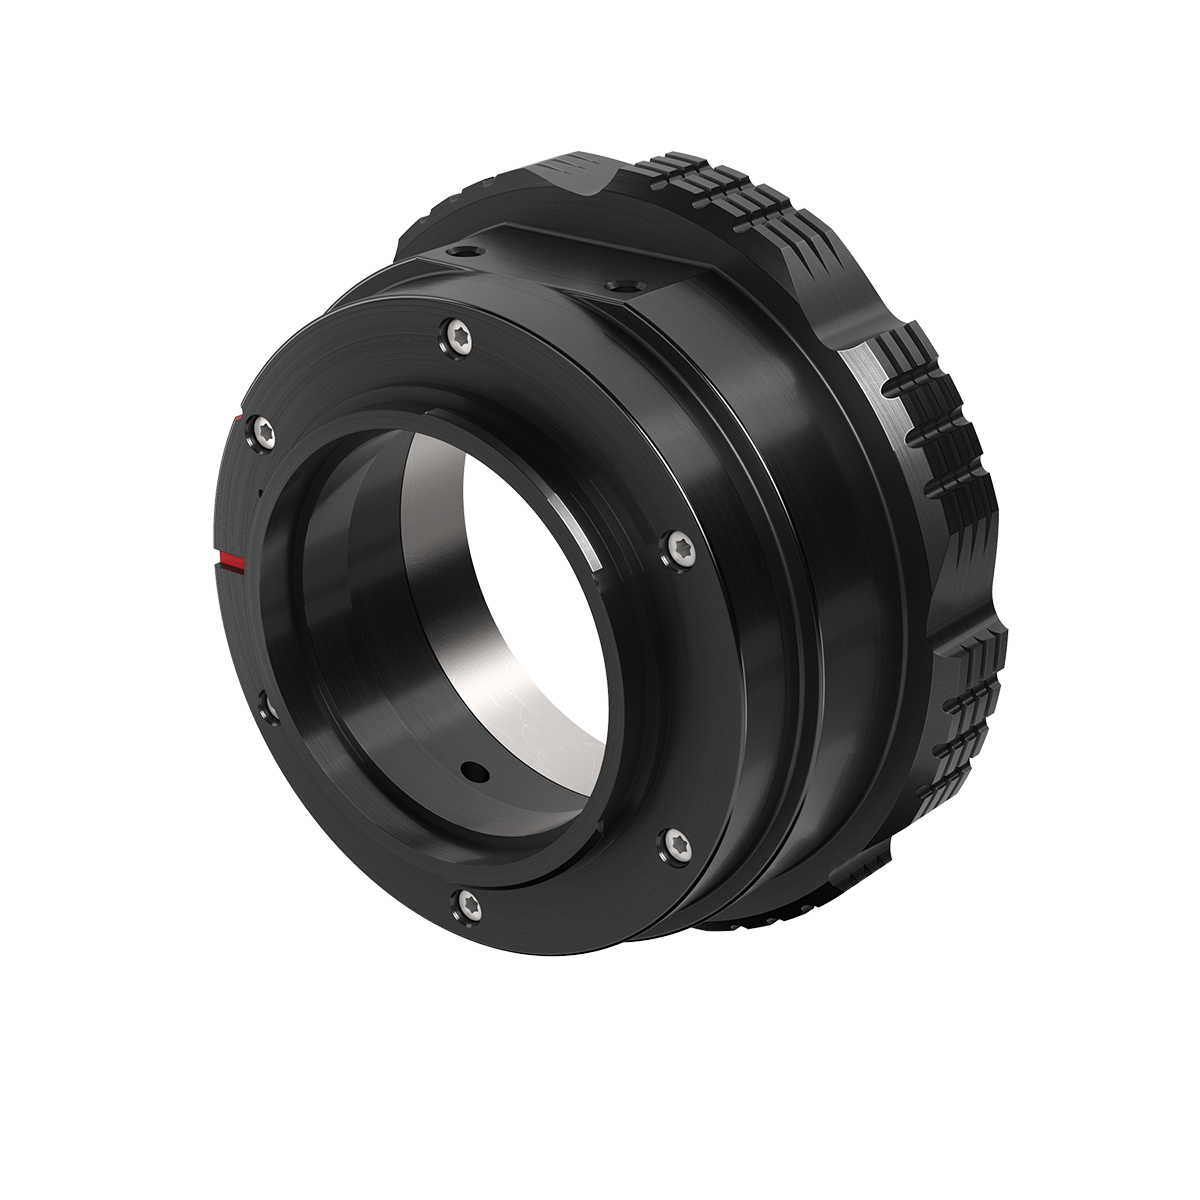 8Sinn RF to PL Lens Mount Adapter Evolution